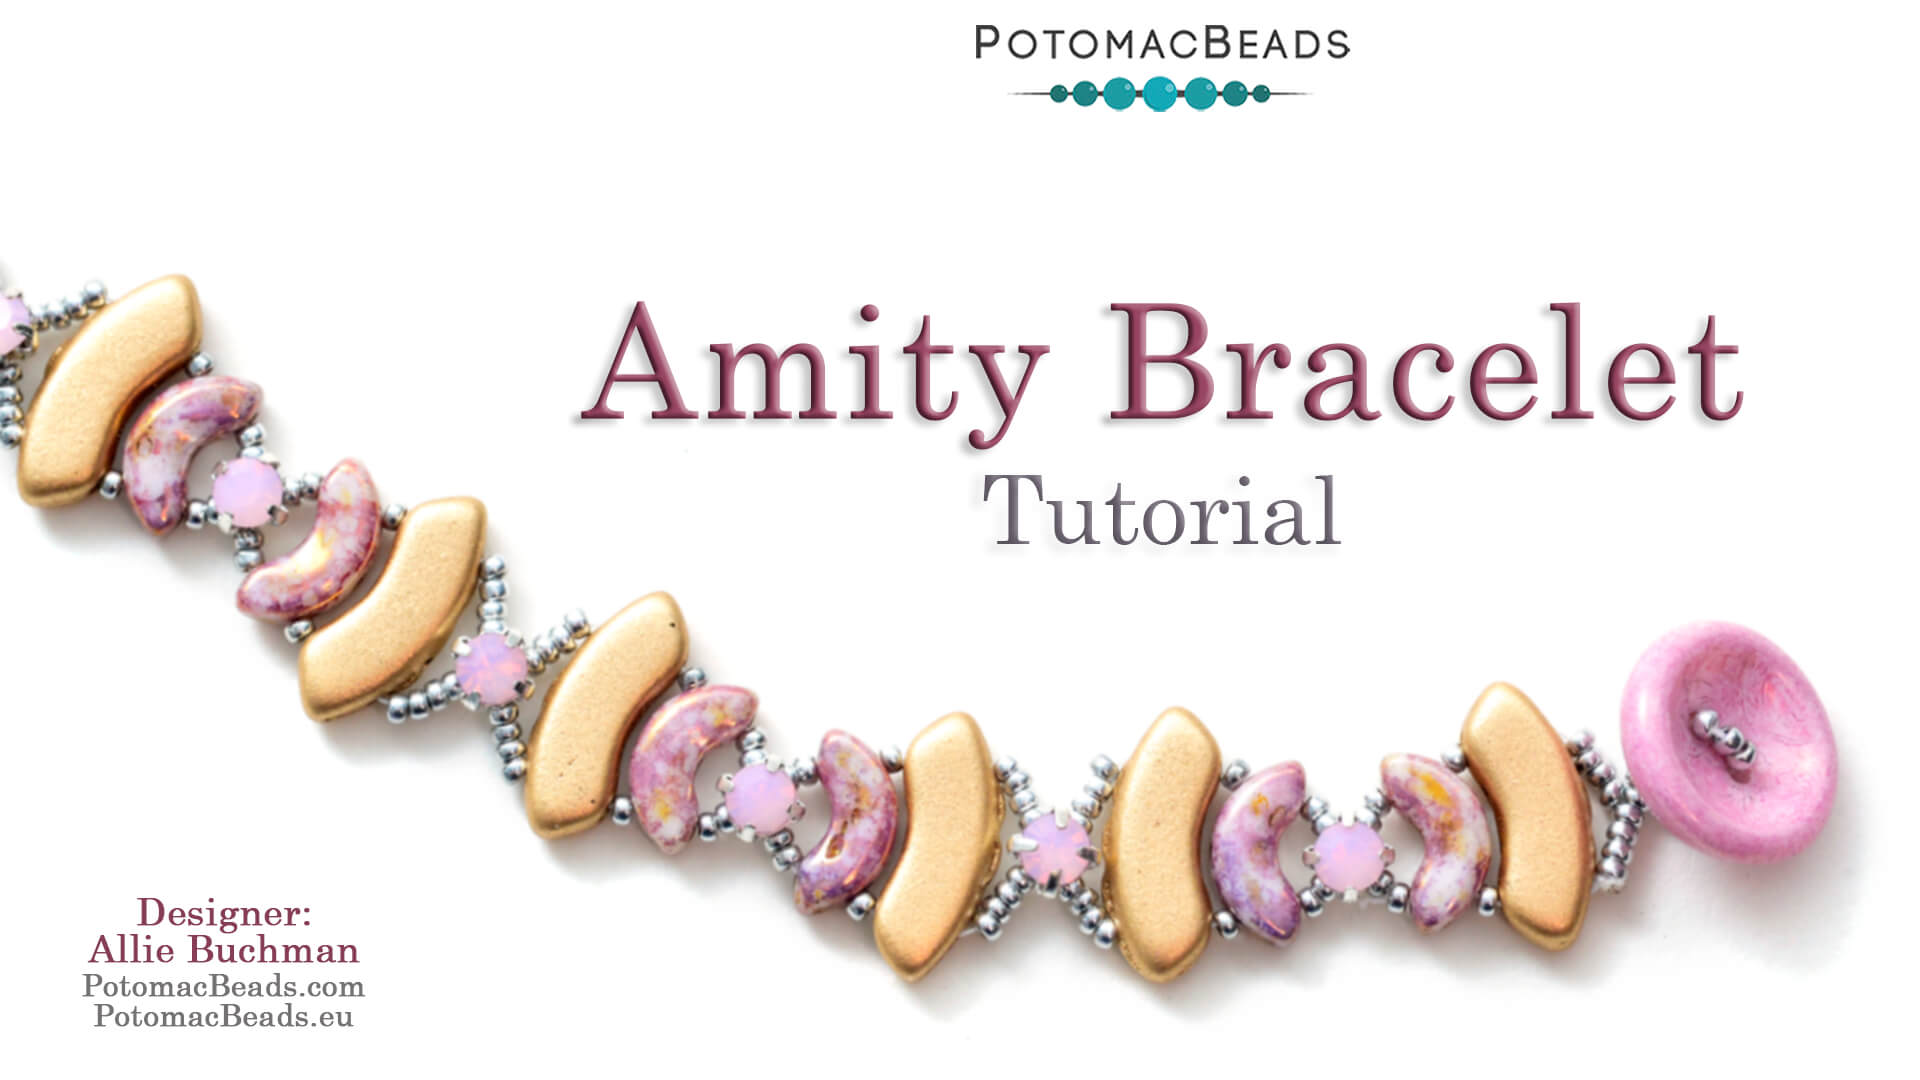 How to Bead / Videos Sorted by Beads / QuadBow & PieDuo Bead Videos / Amity Bracelet Tutorial